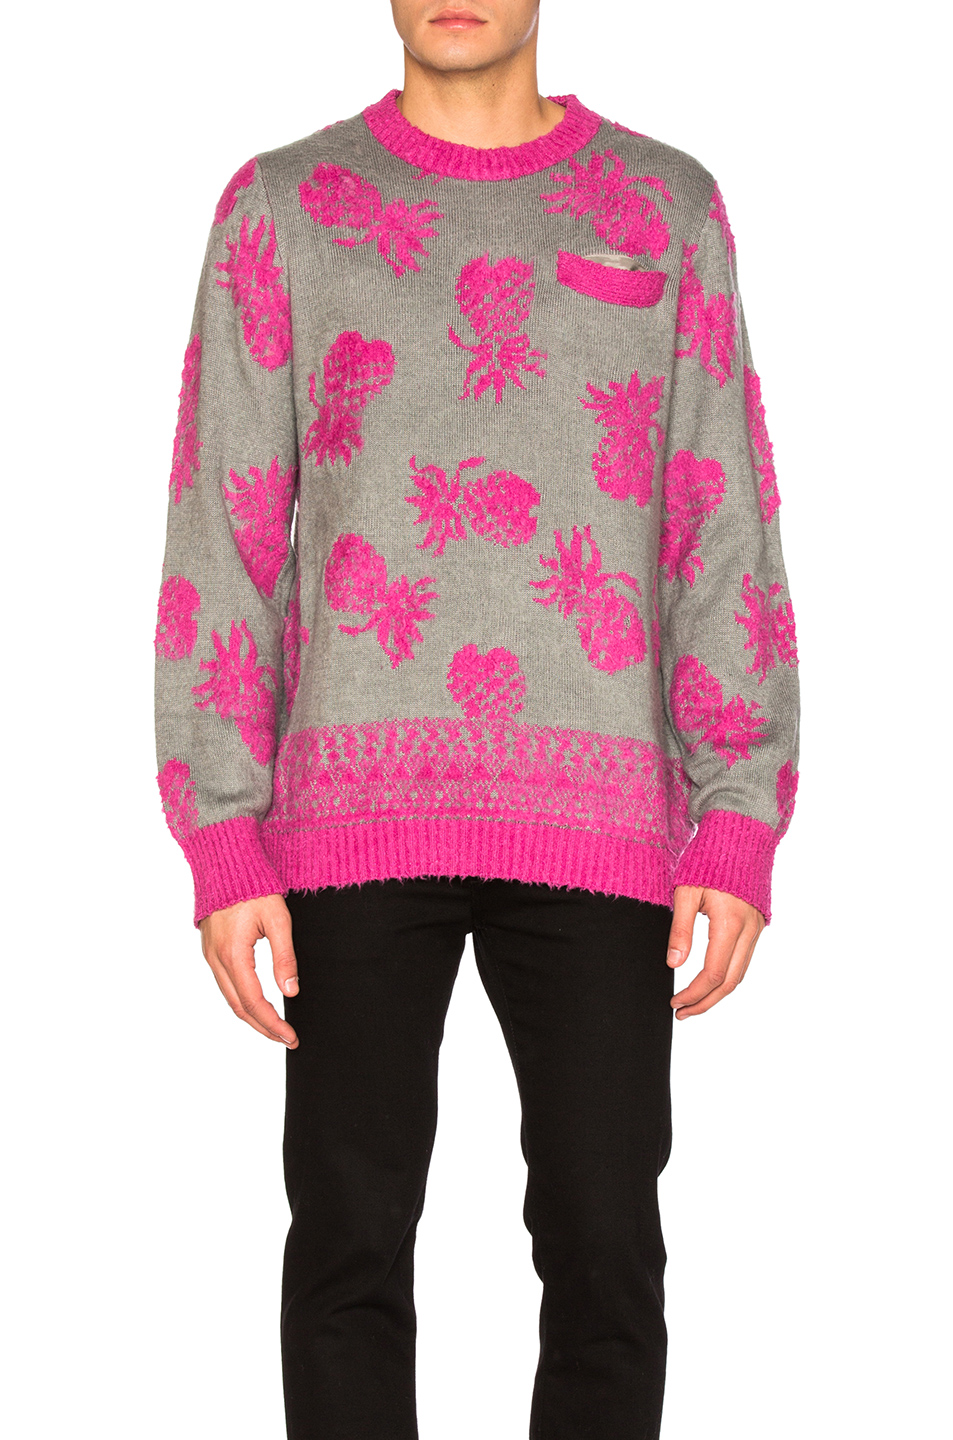 Sacai Pineapple Knit Pullover in Gray,Abstract,Pink